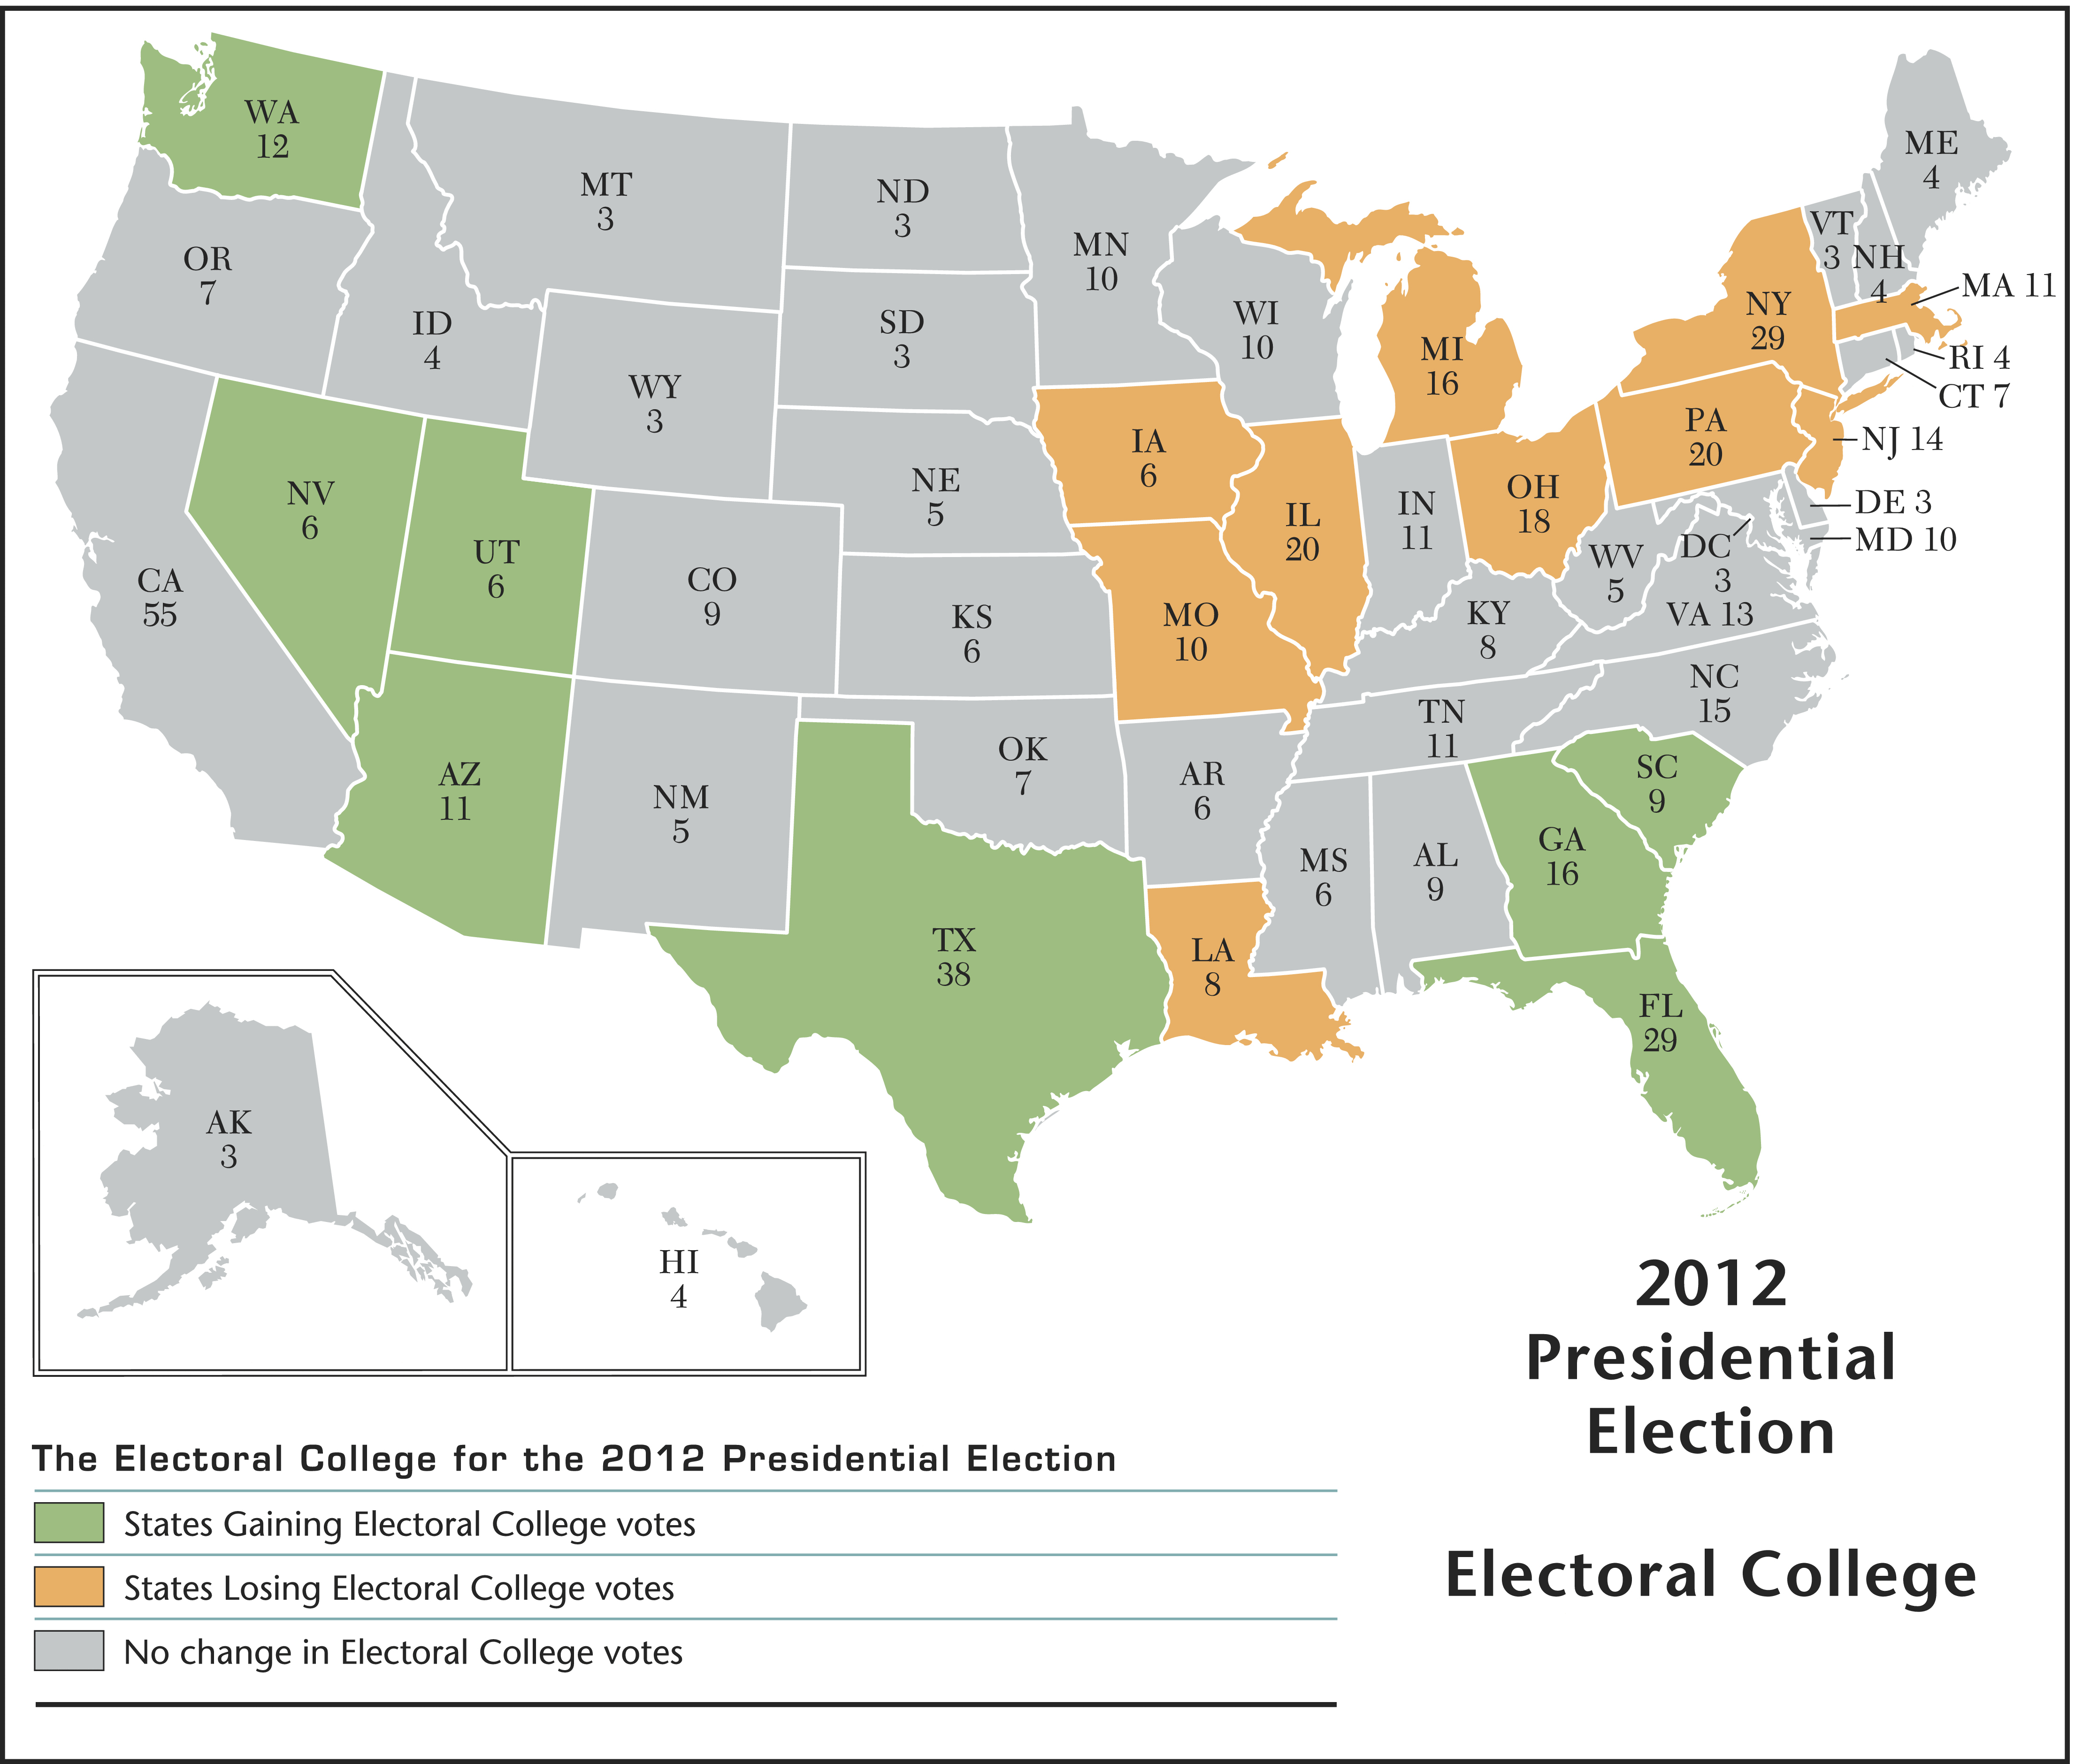 Total Votes In Electoral College